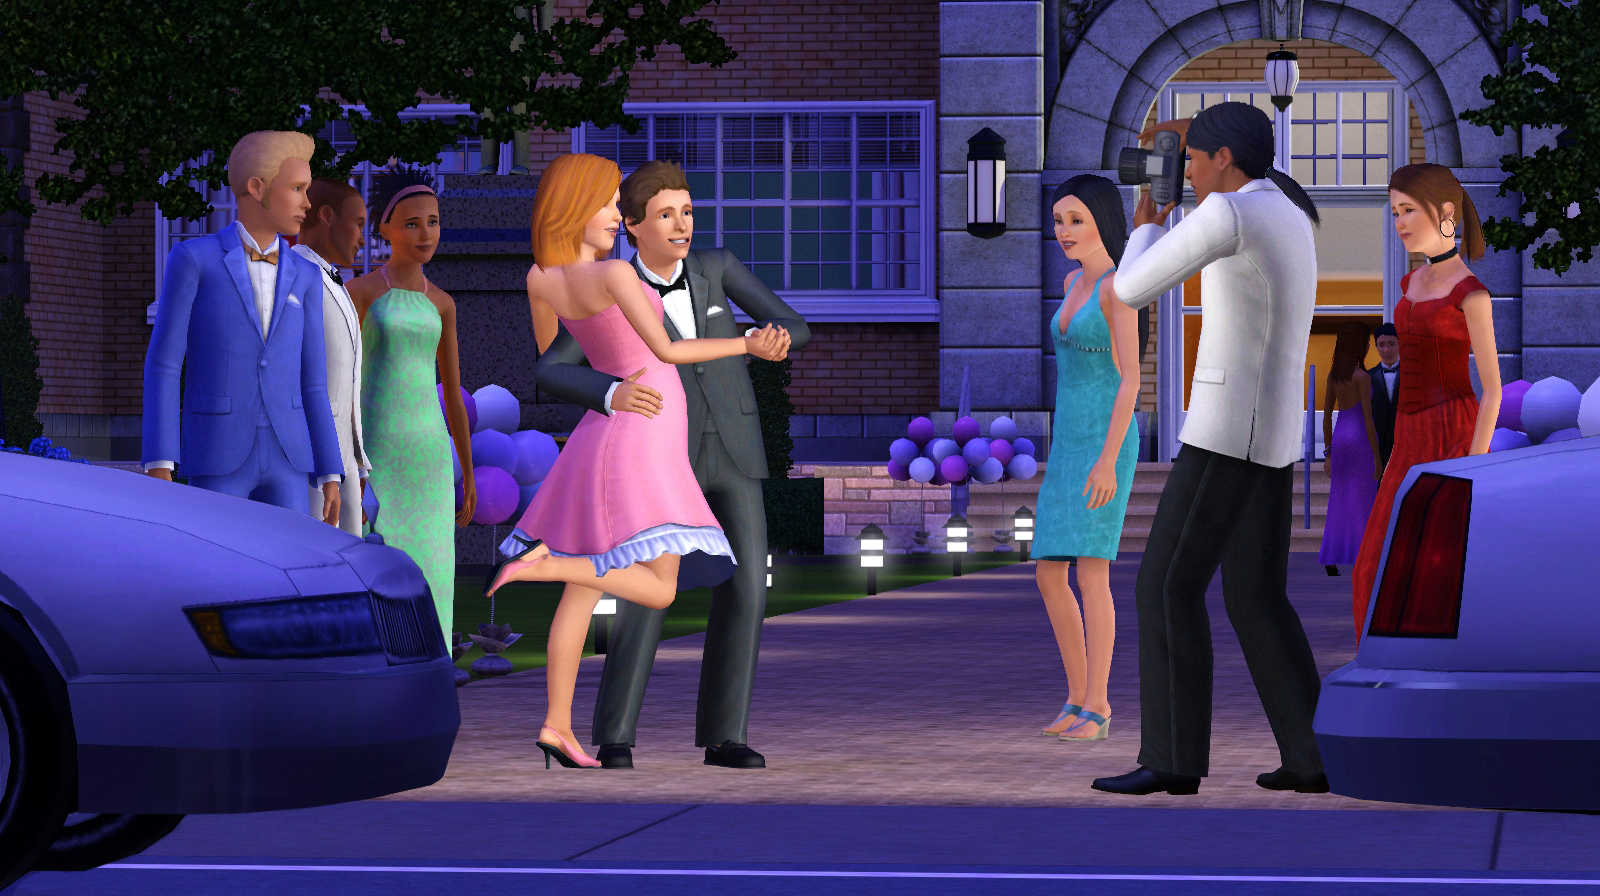 sims 3 generations, generations, best sims expansions